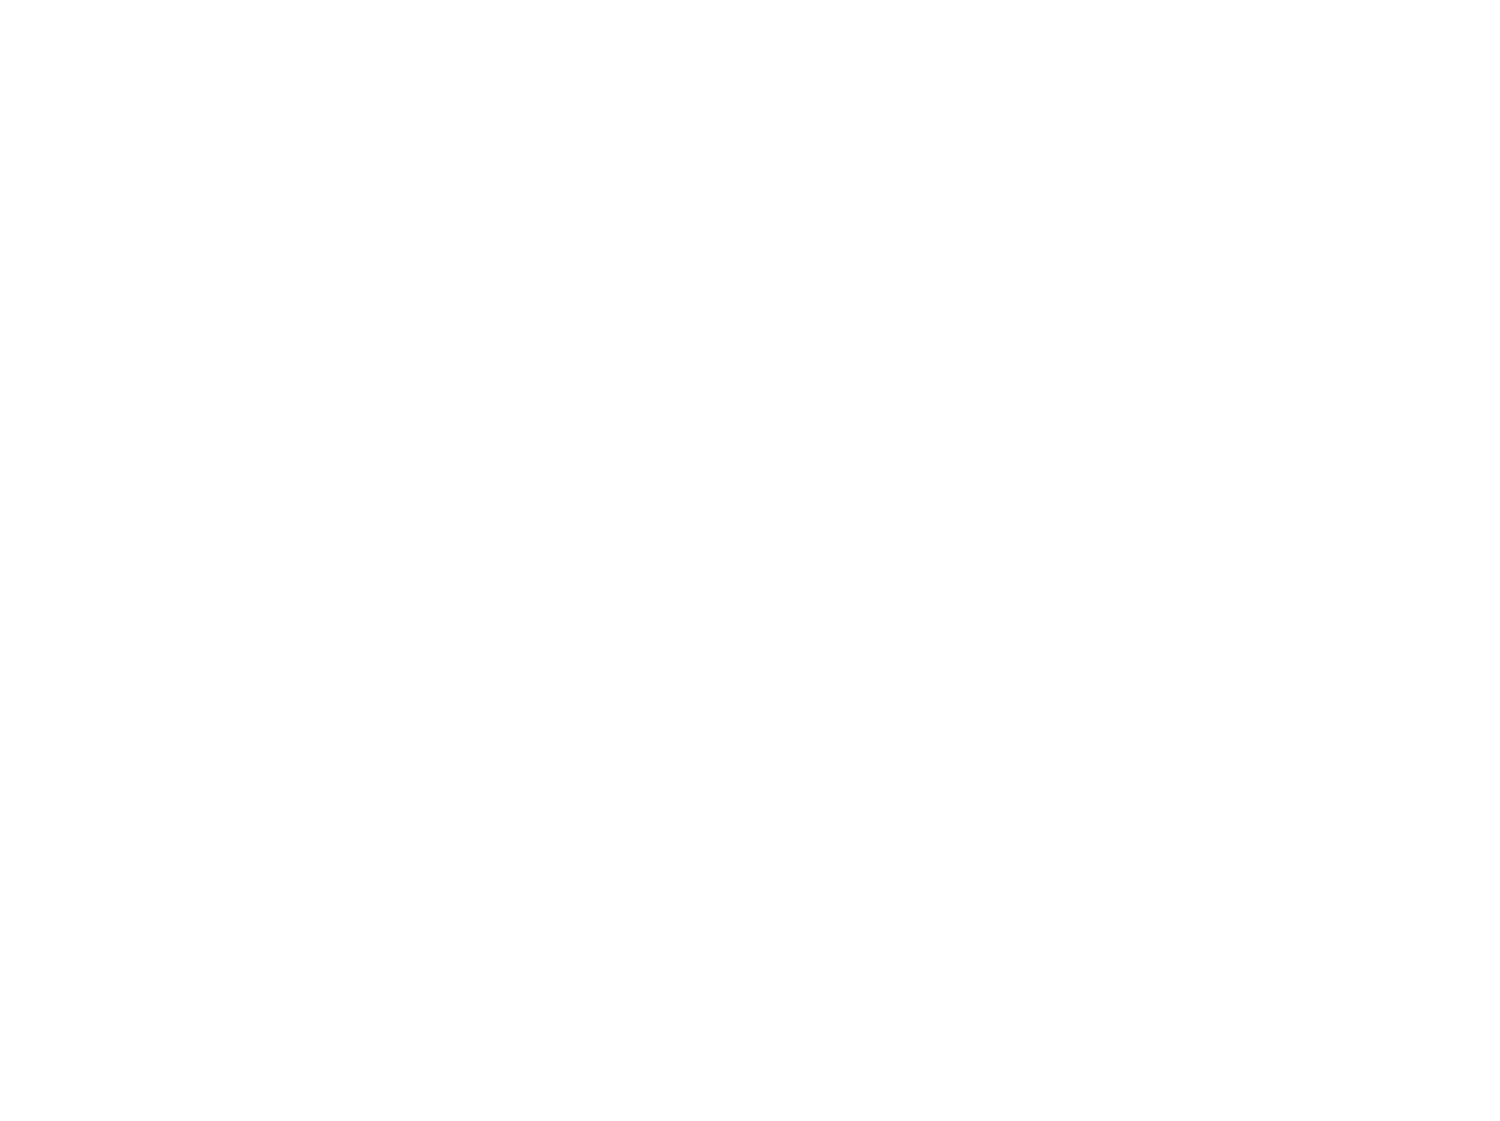 A-Z Michigan Home Inspection